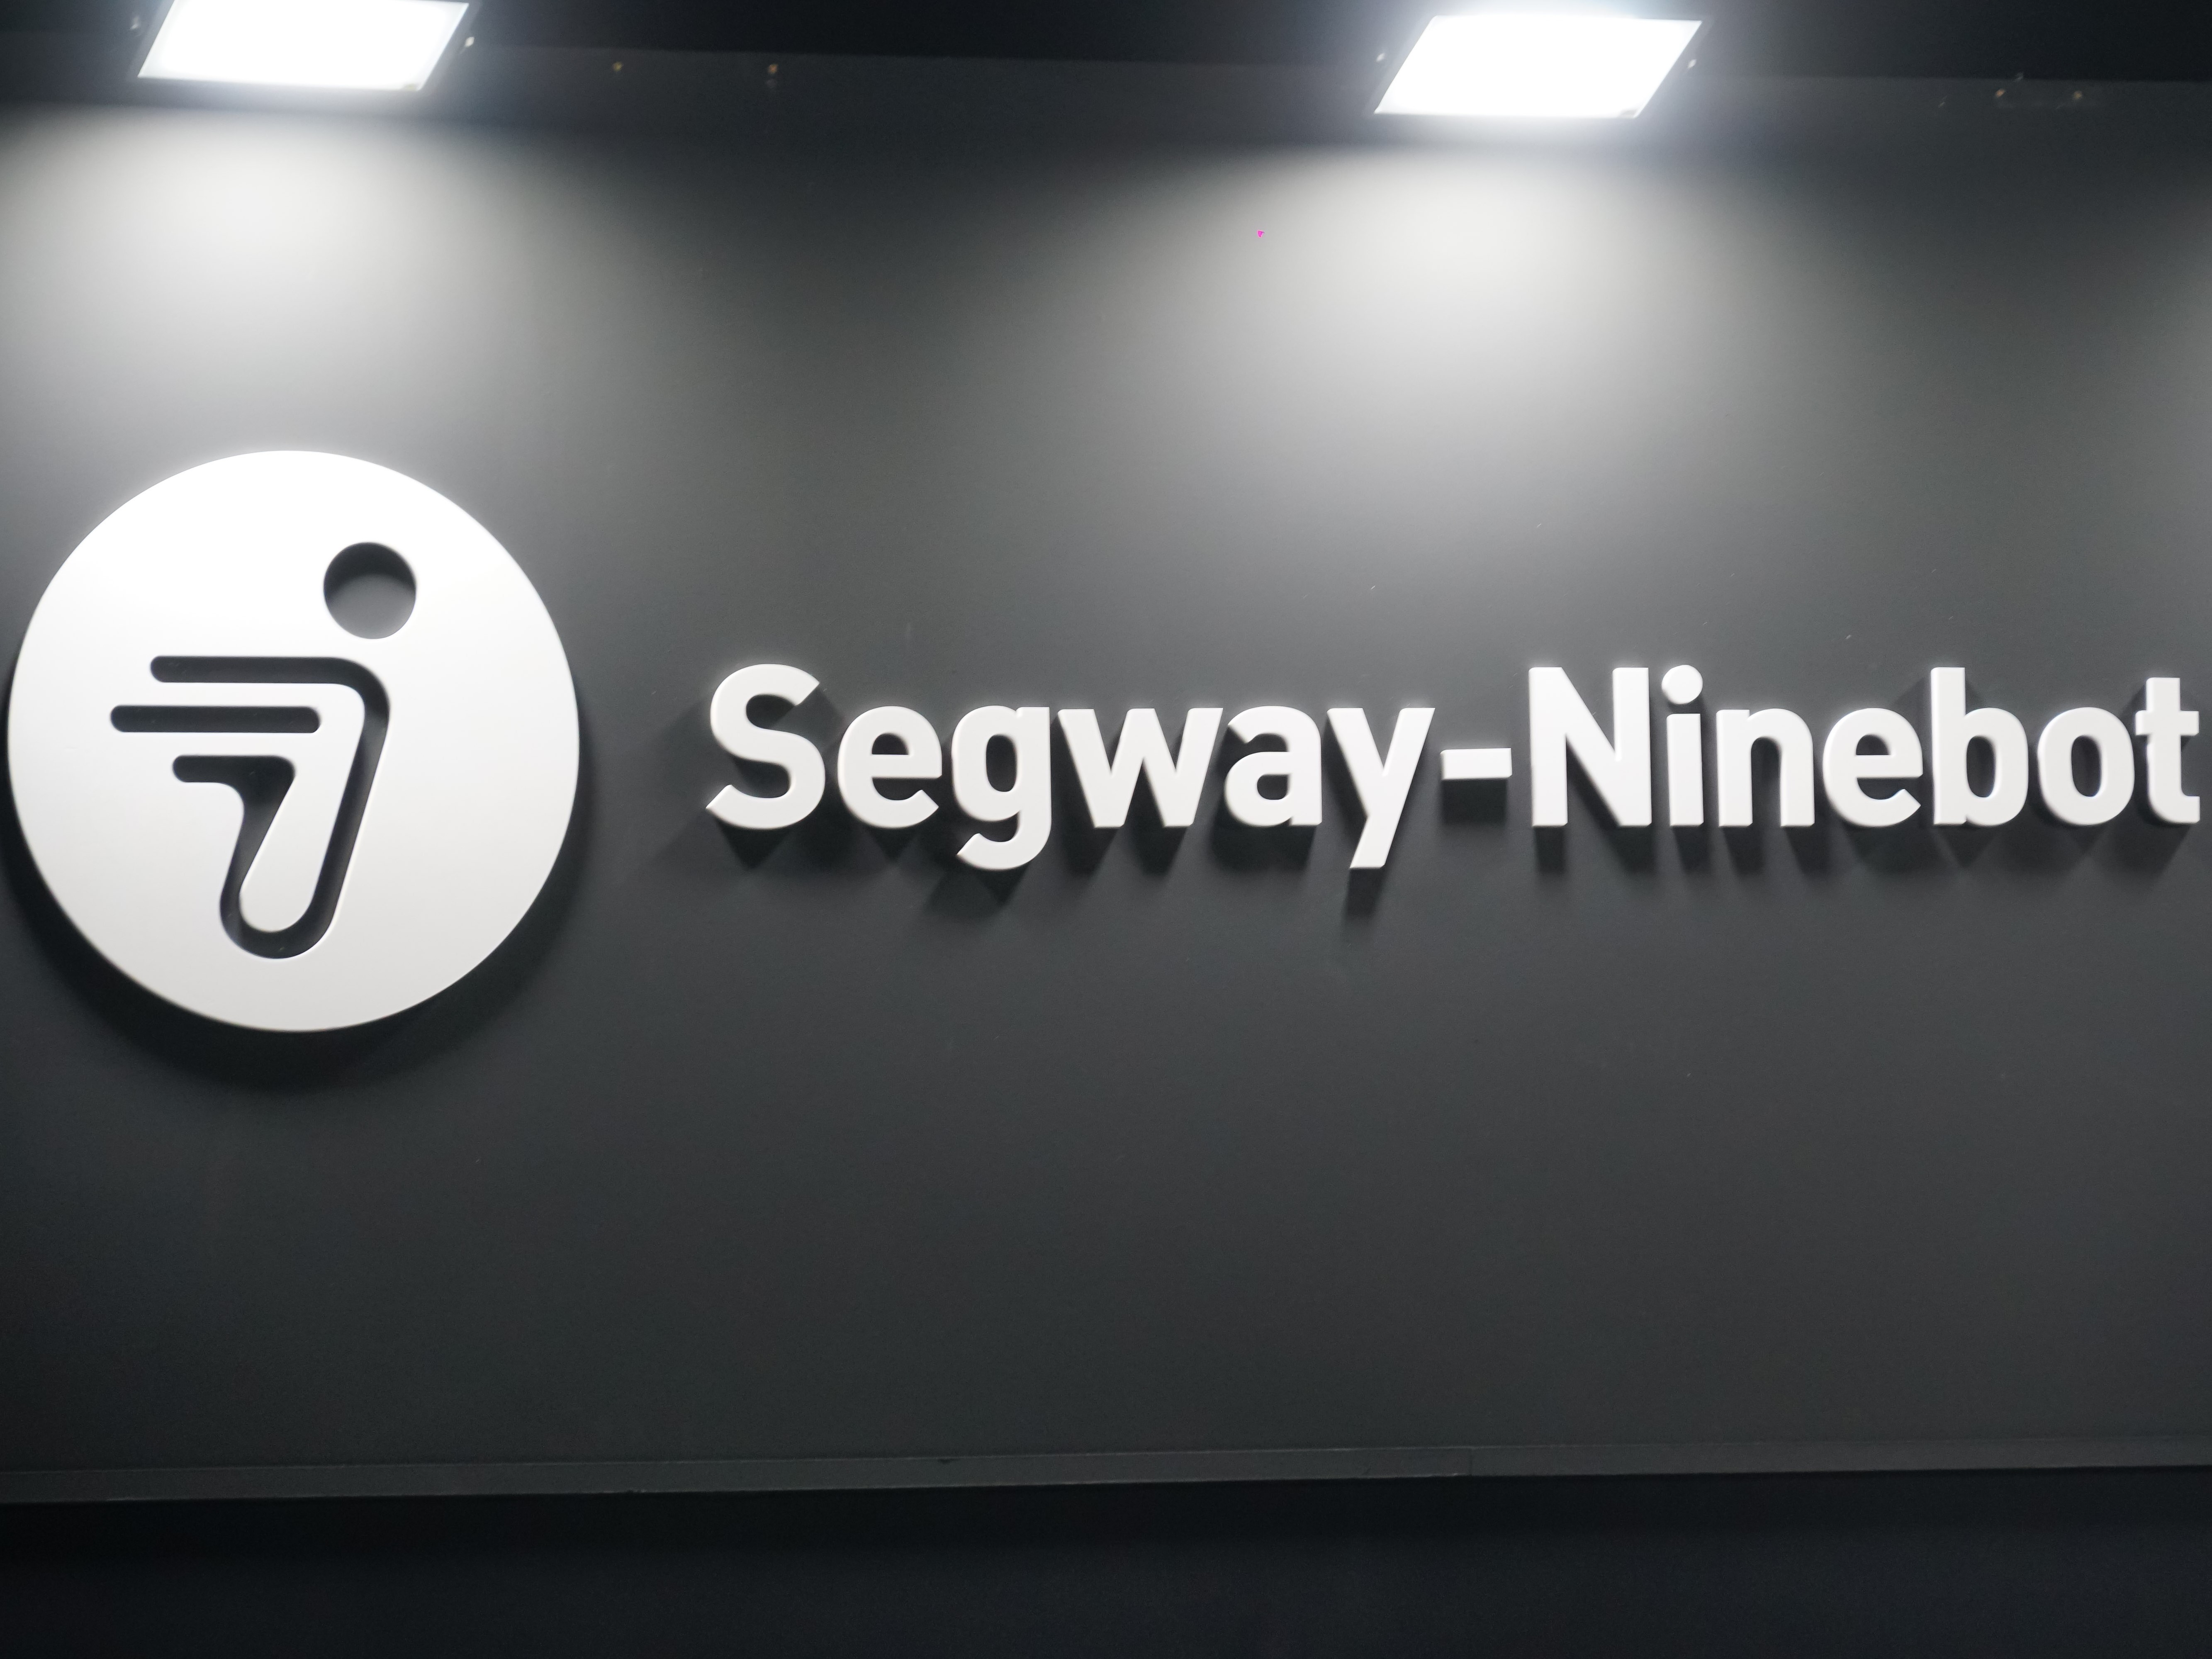 The Last Word about the Last Mile? Segway-Ninebot Needs More Funds in 2020